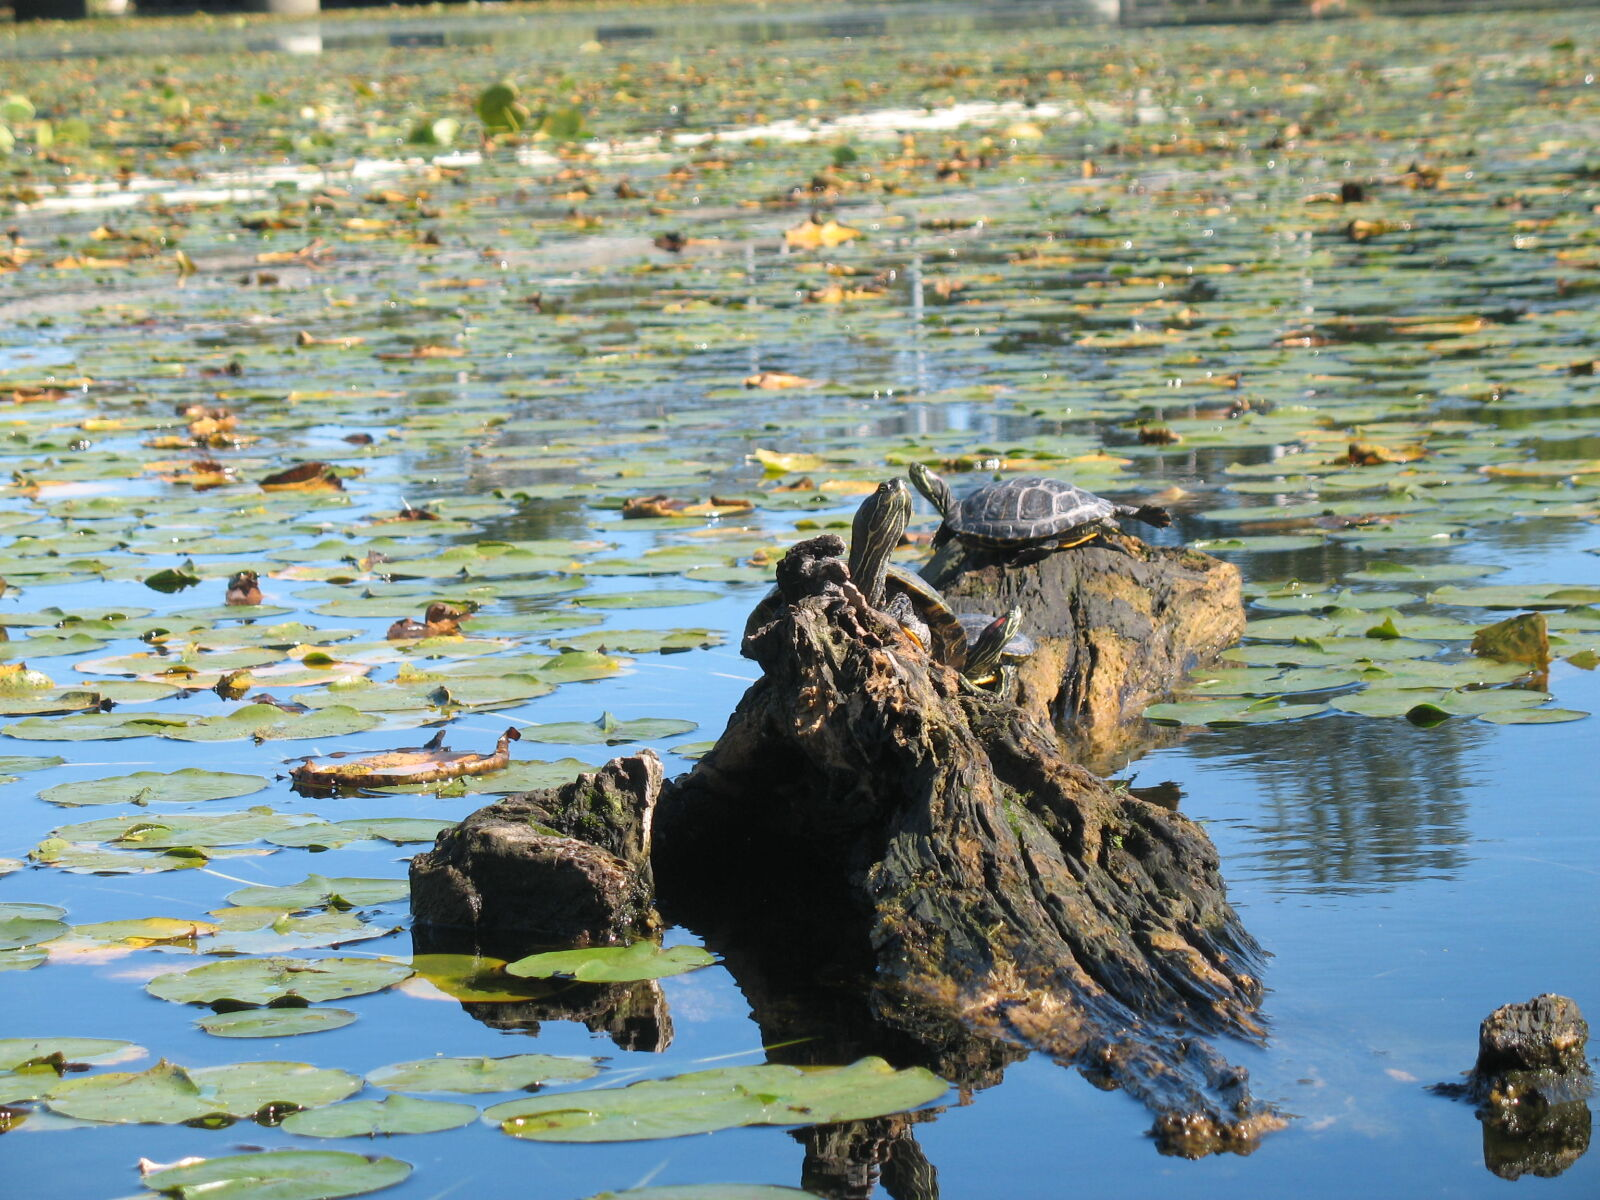 """Canon POWERSHOT A620 sample photo. """"Turtles"""" photography"""